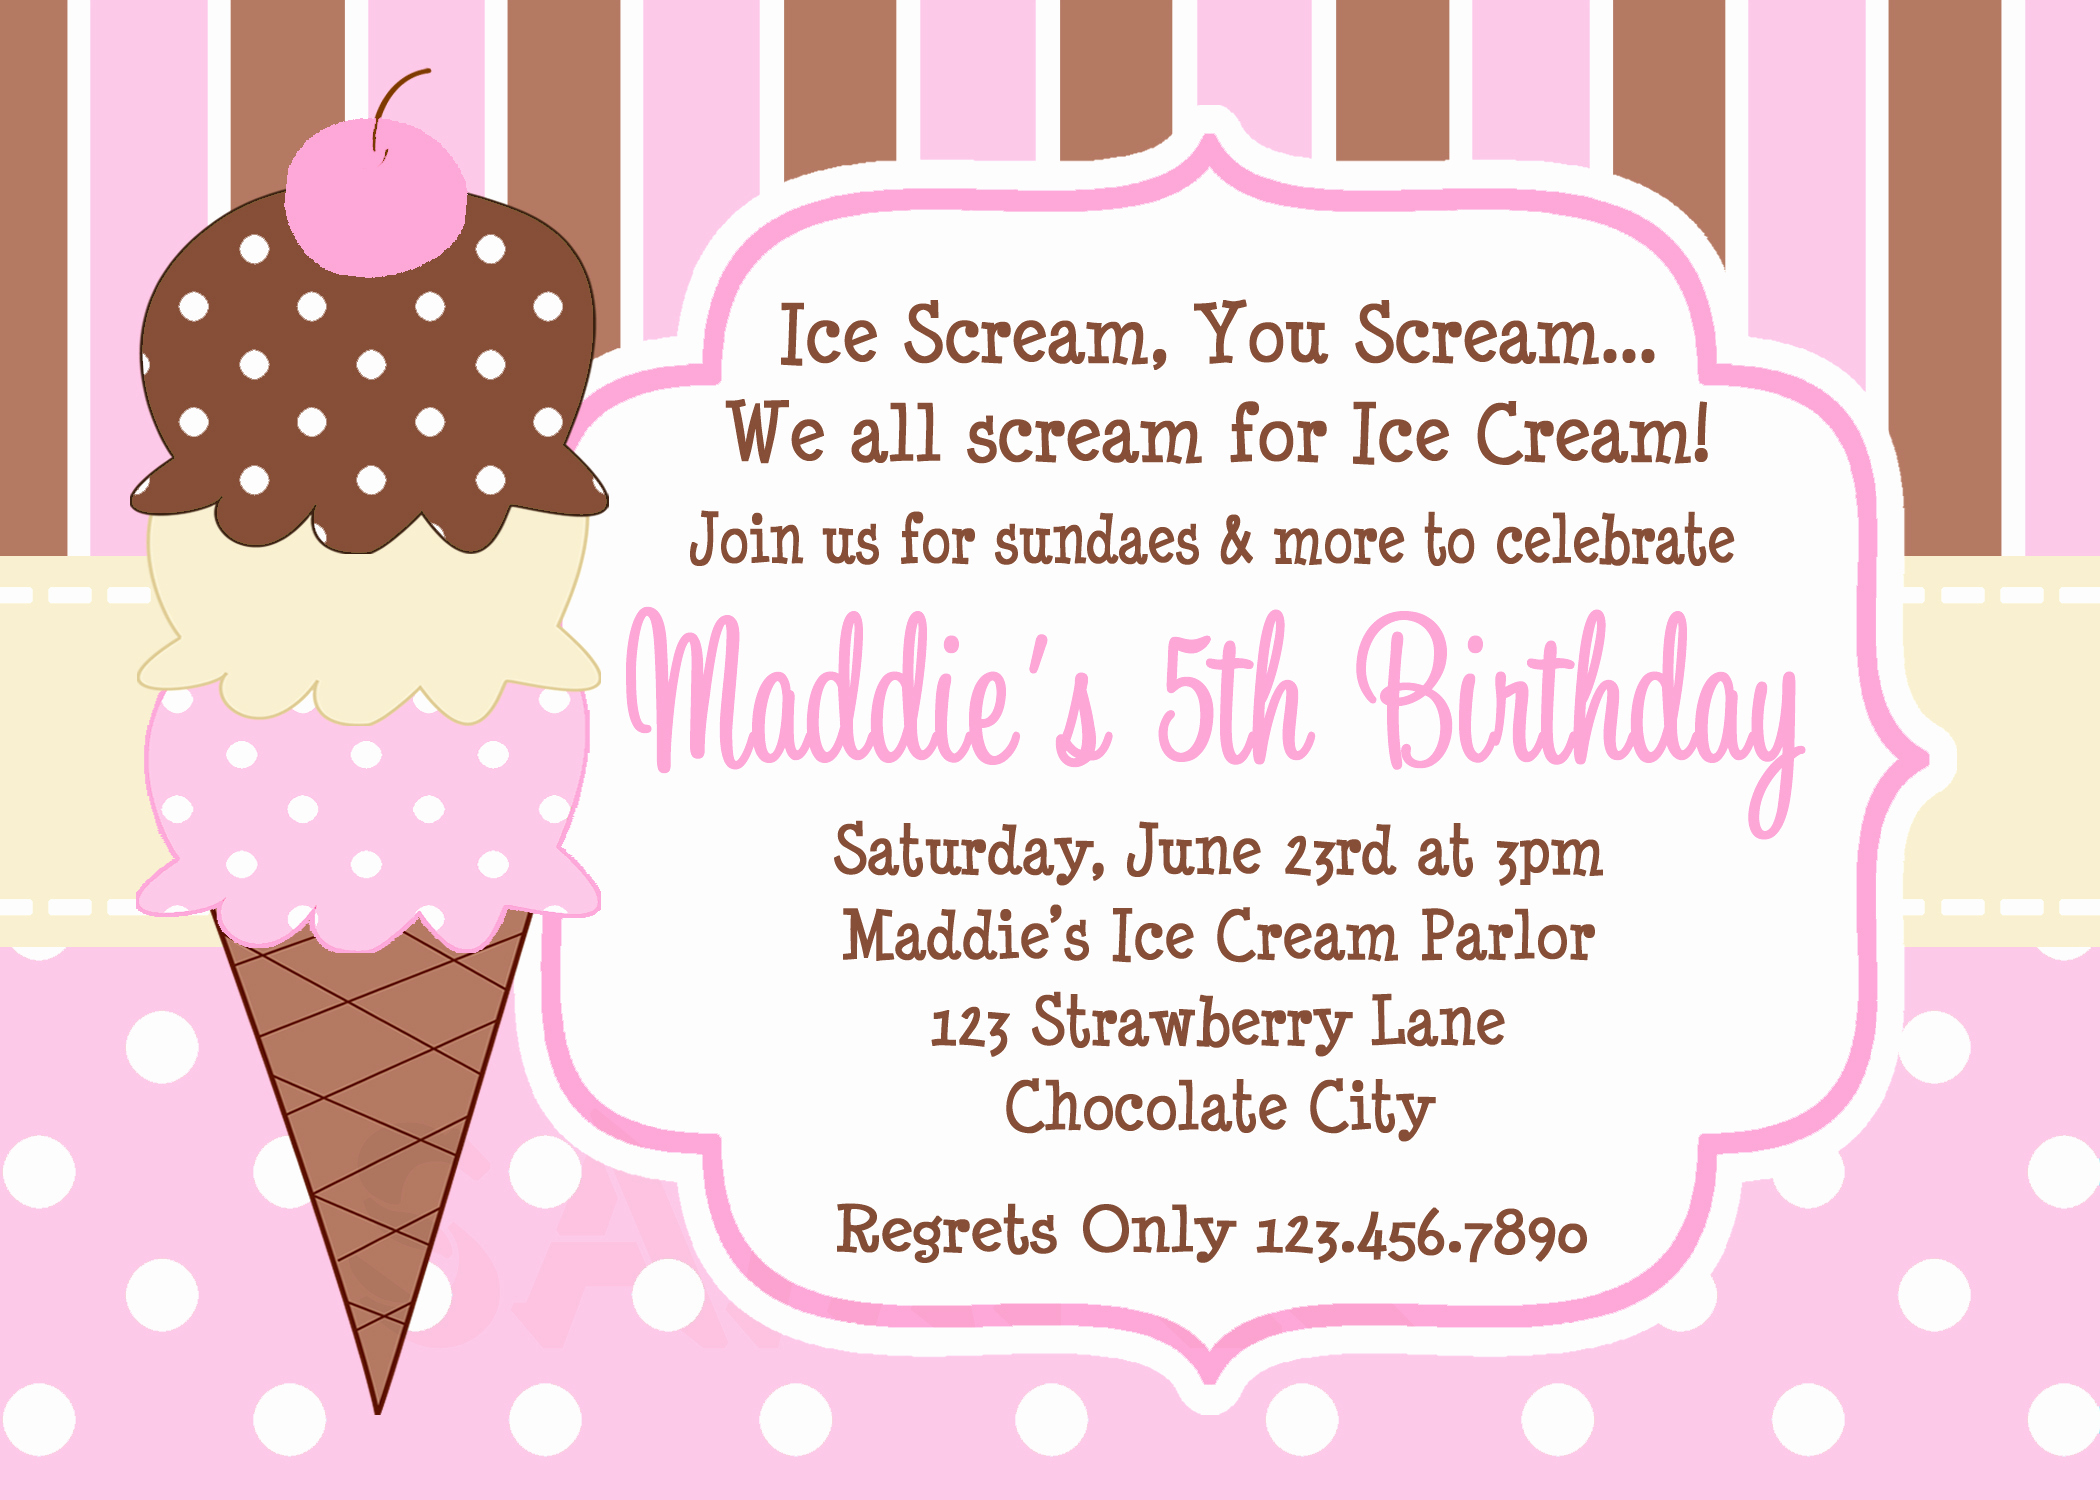 Ice Cream Party Invitation Beautiful Ice Cream Birthday Party Invitations